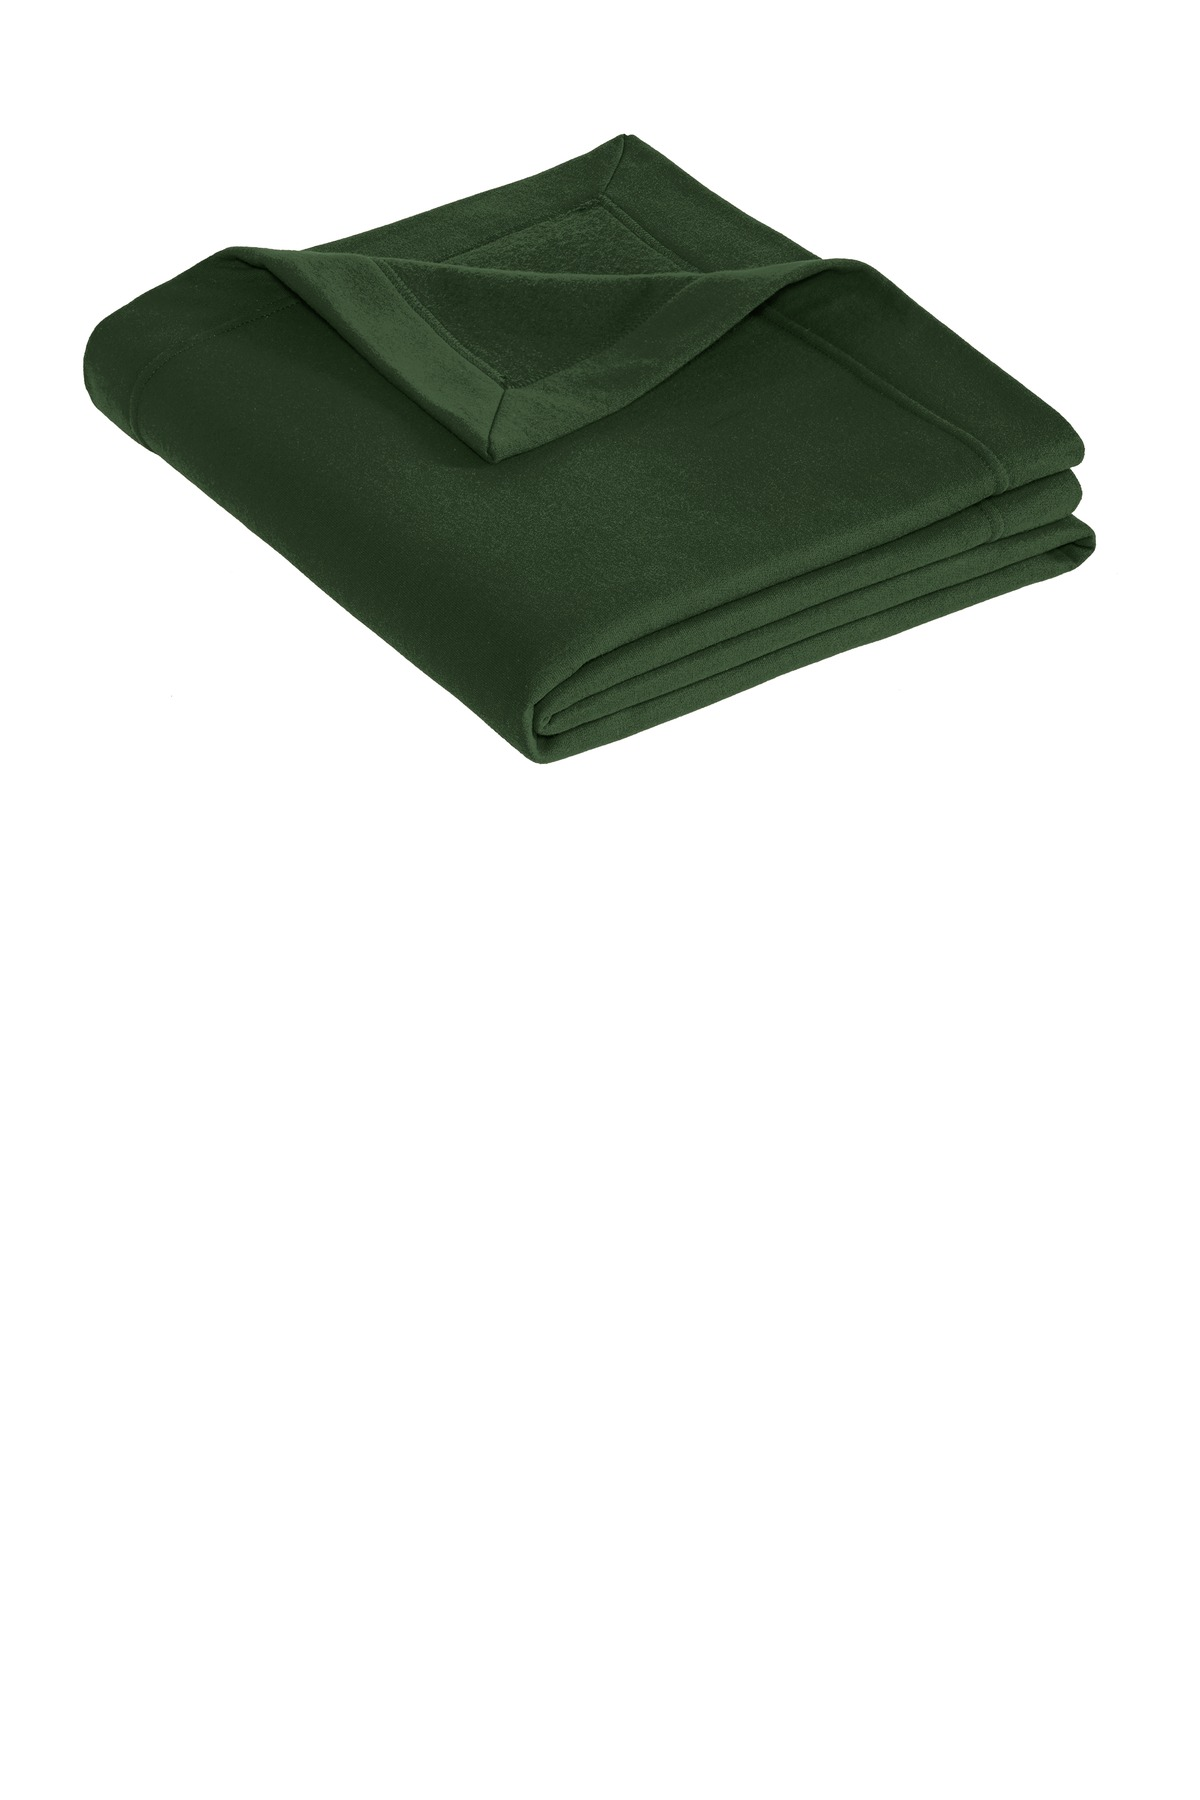 Gildan ®  DryBlend ®  Stadium Blanket. 12900 - Forest Green